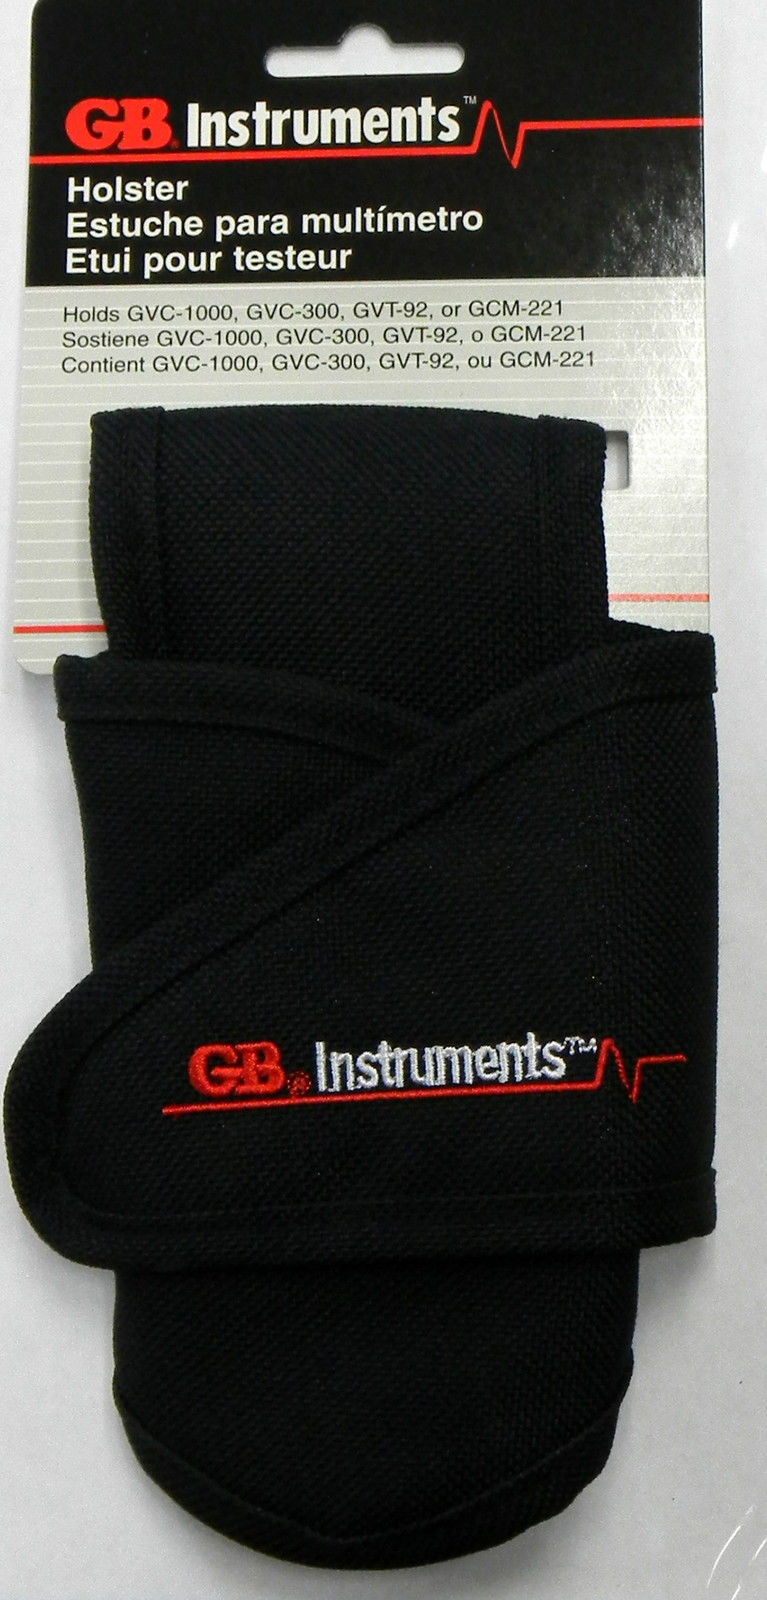 Gardner Bender CSE-1200 Instruments Nylon Tester Carrying Holster Case